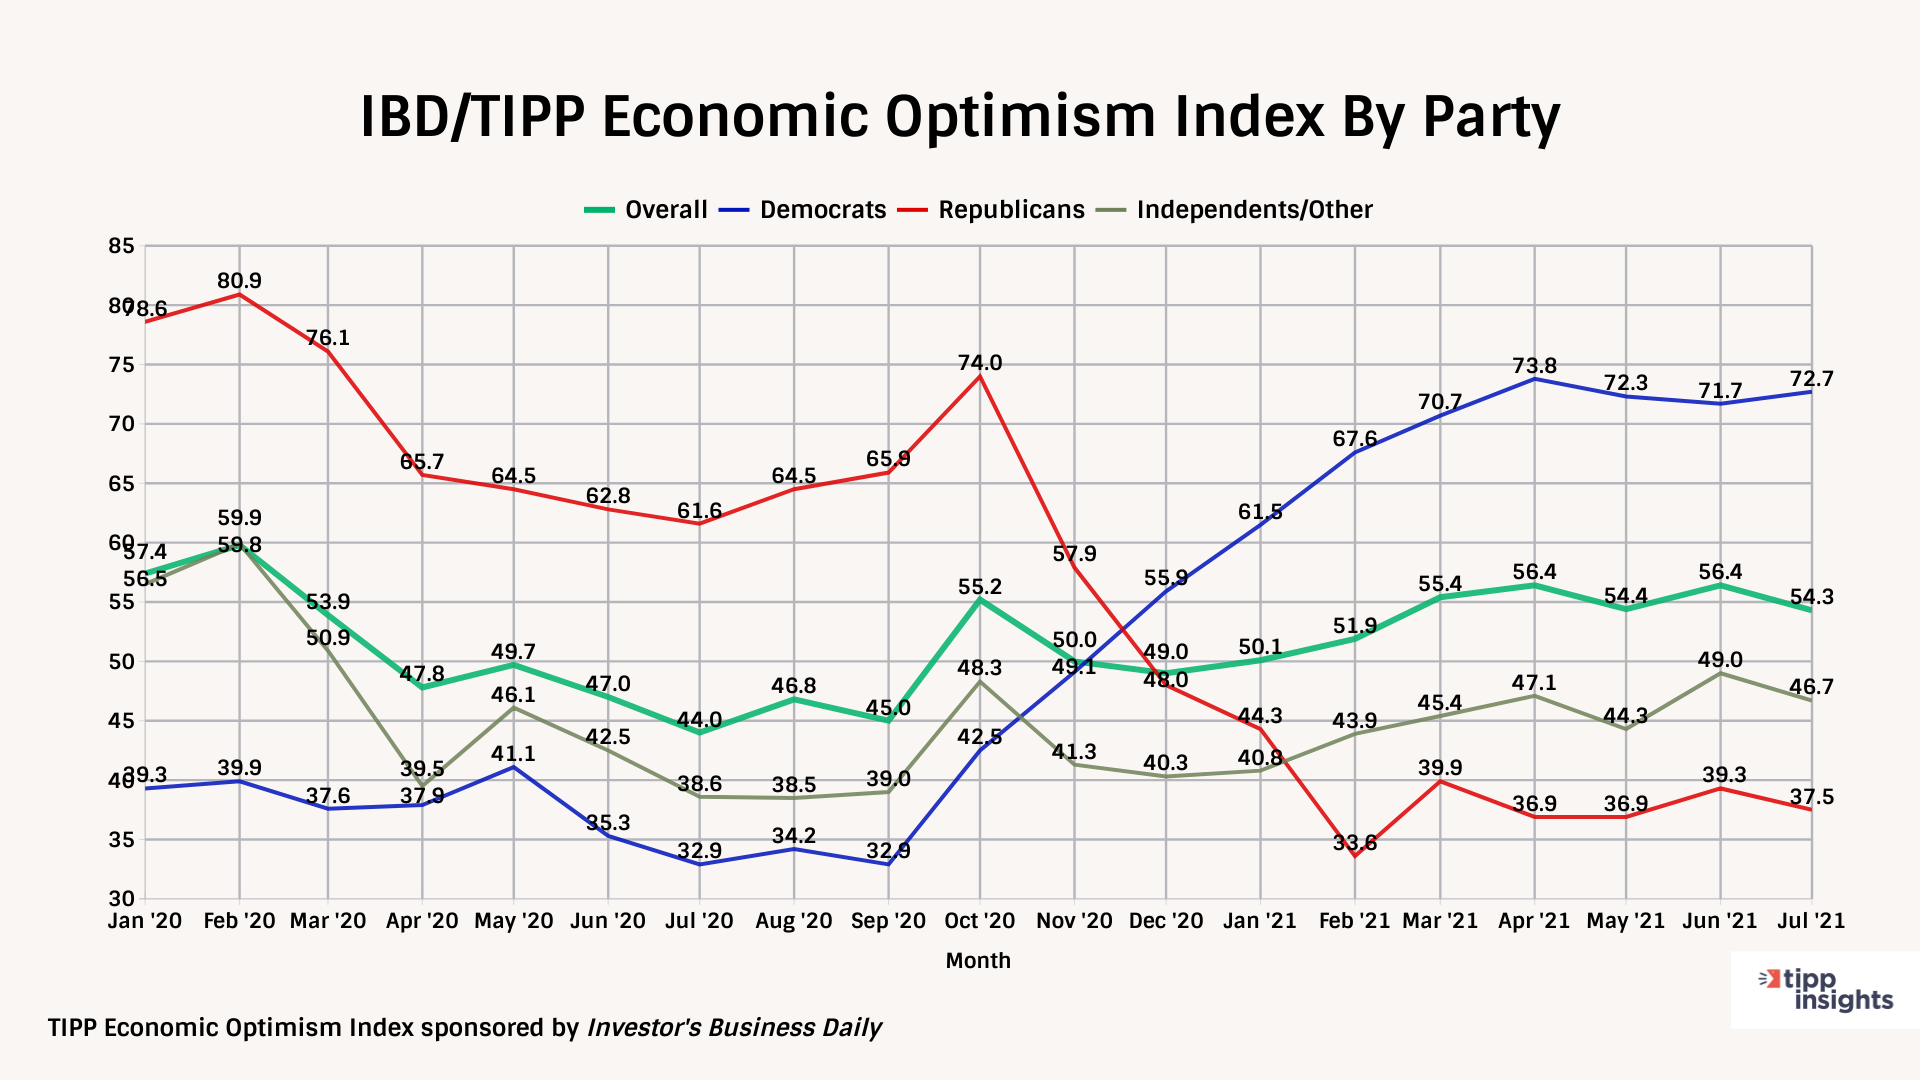 IBD/TIPP Economic Optimism Index By Party For july 2021